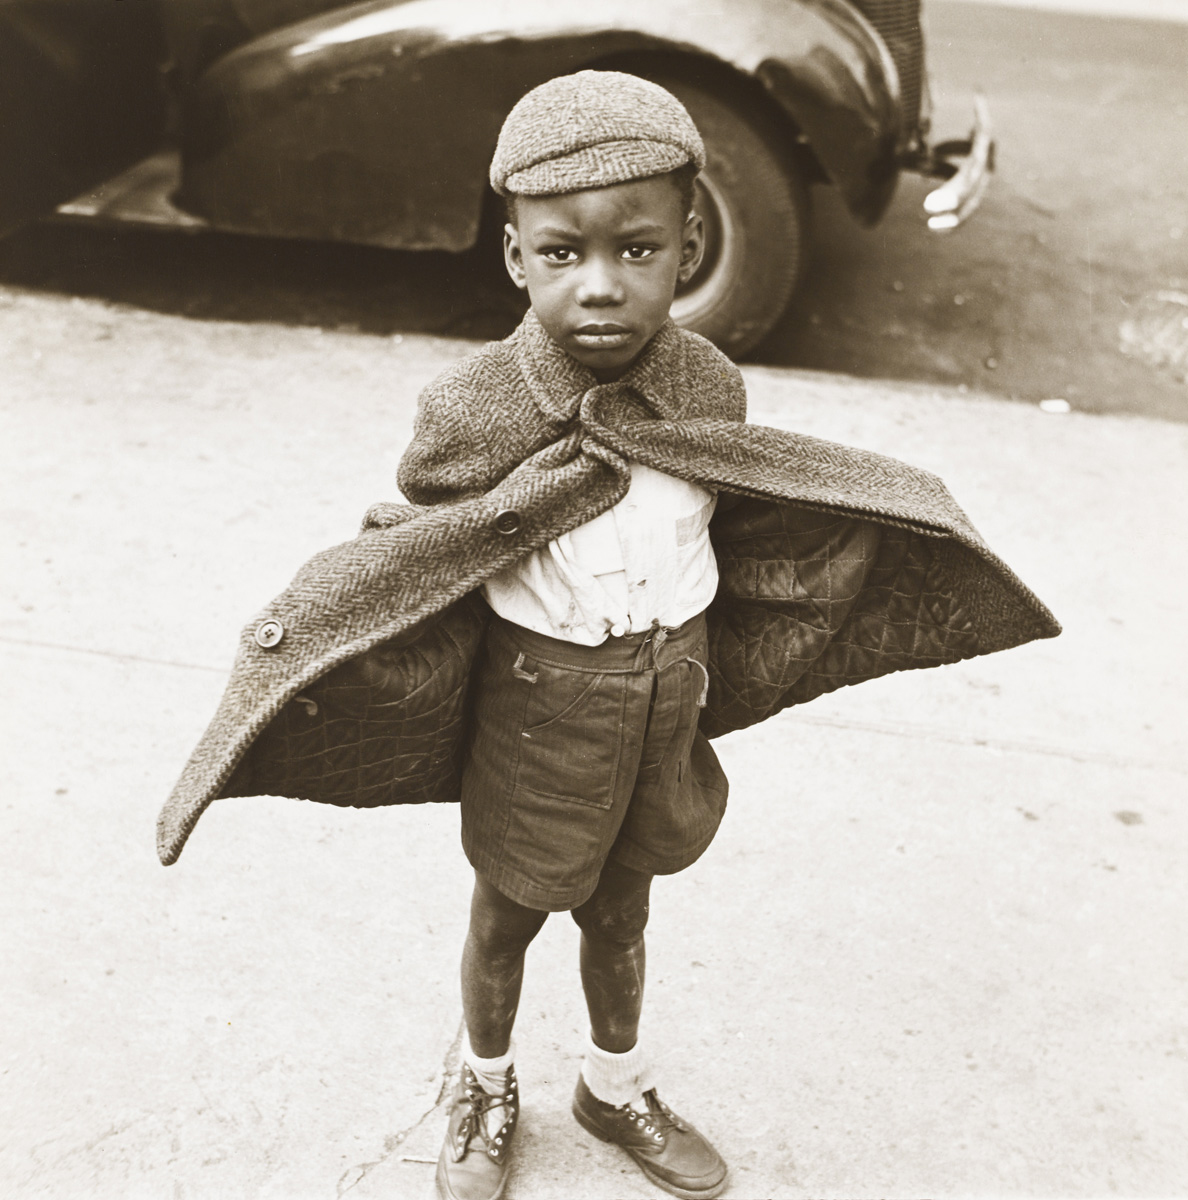 Jerome Liebling, Butterfly Boy, New York, 1949, gelatin silver print.  Columbus Museum of Art, Ohio, Photo League Collection, Museum Purchase with funds provided by Elizabeth M. Ross, the Derby fund, John S. and Catherine Chapin Kobacker, and the Friends of the Photo League.   c Estate of Jerome Liebling.